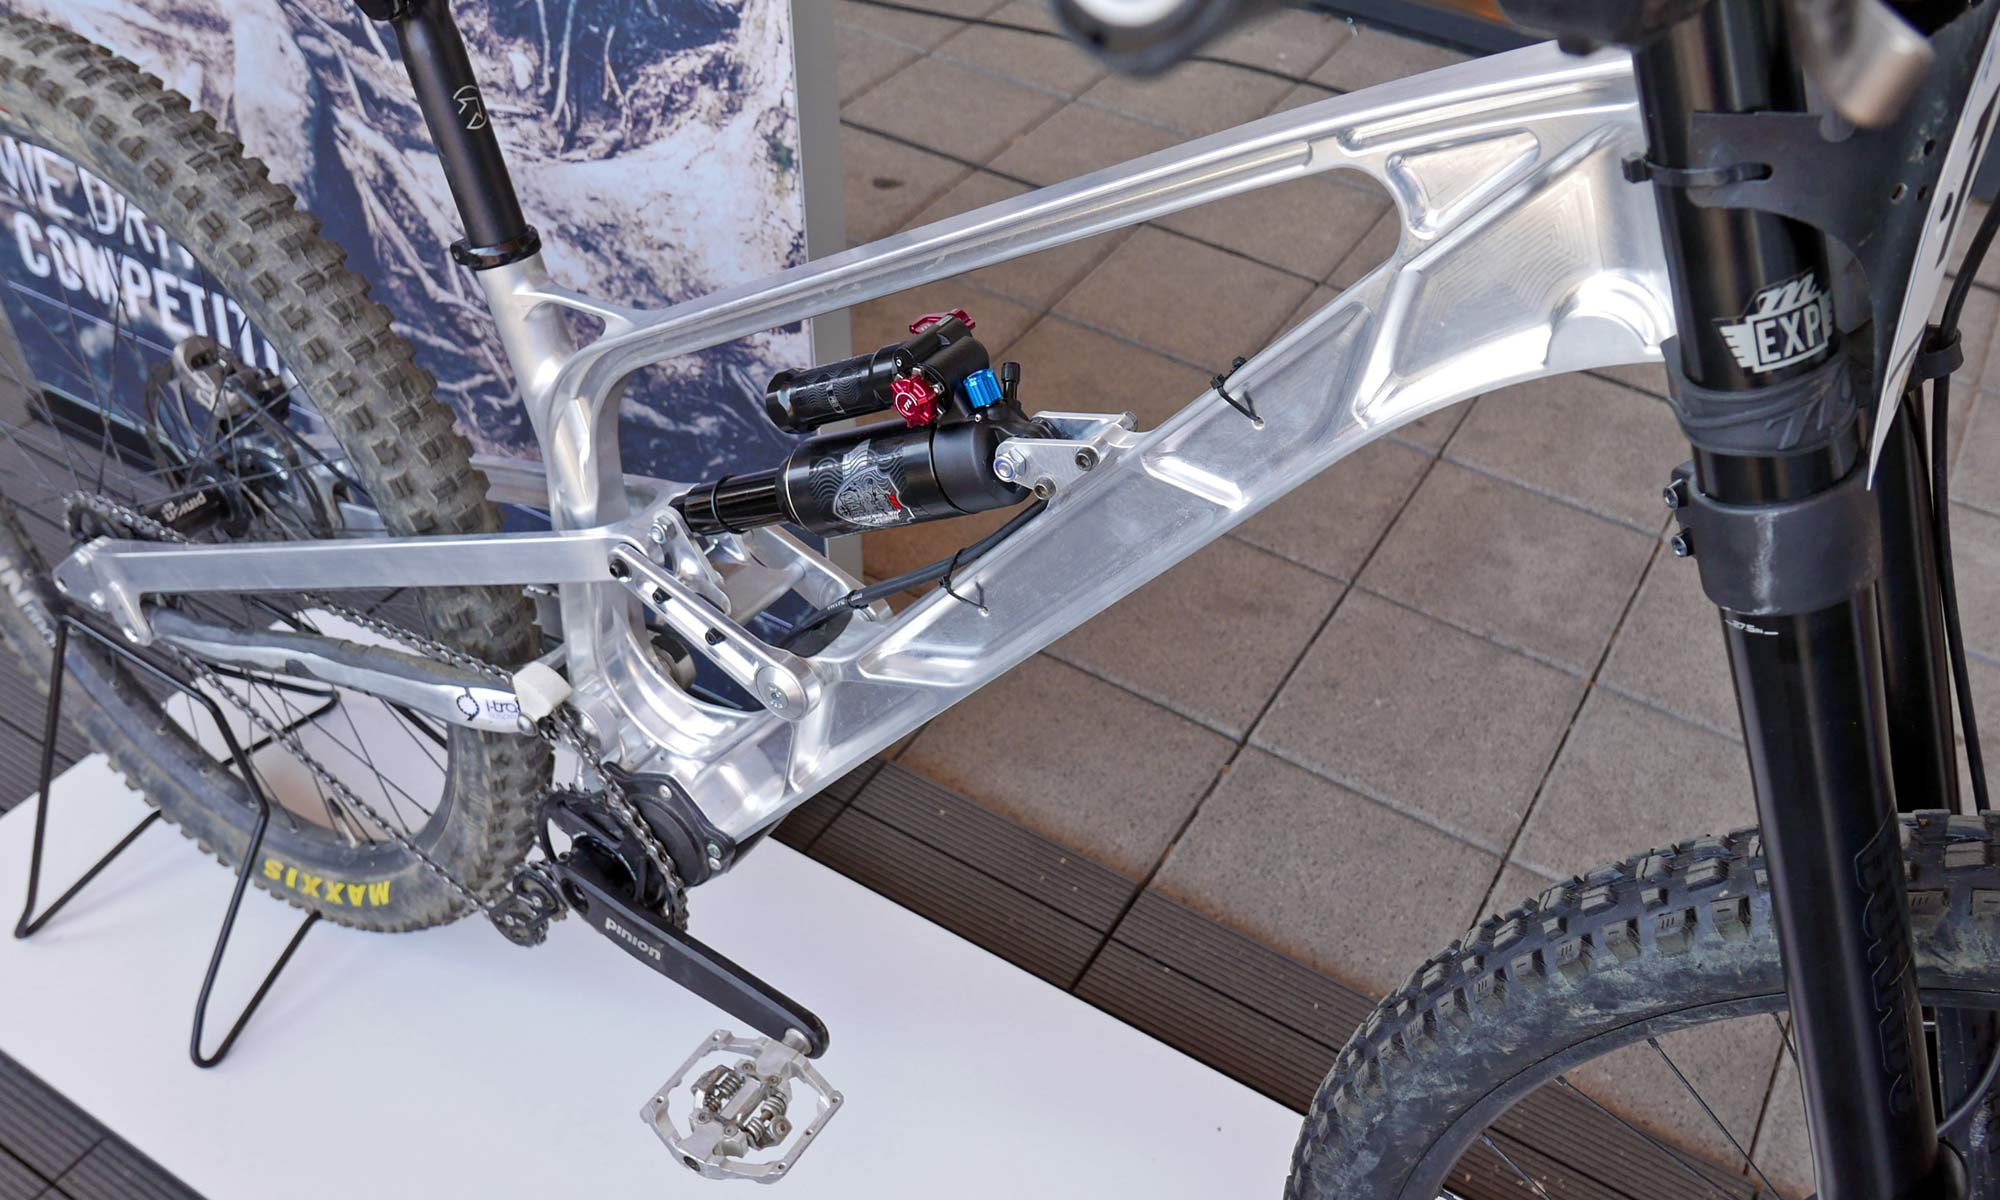 Gamux CNC 197 Gearbox DH, prototype Pinion gearbox downhill bike, front end